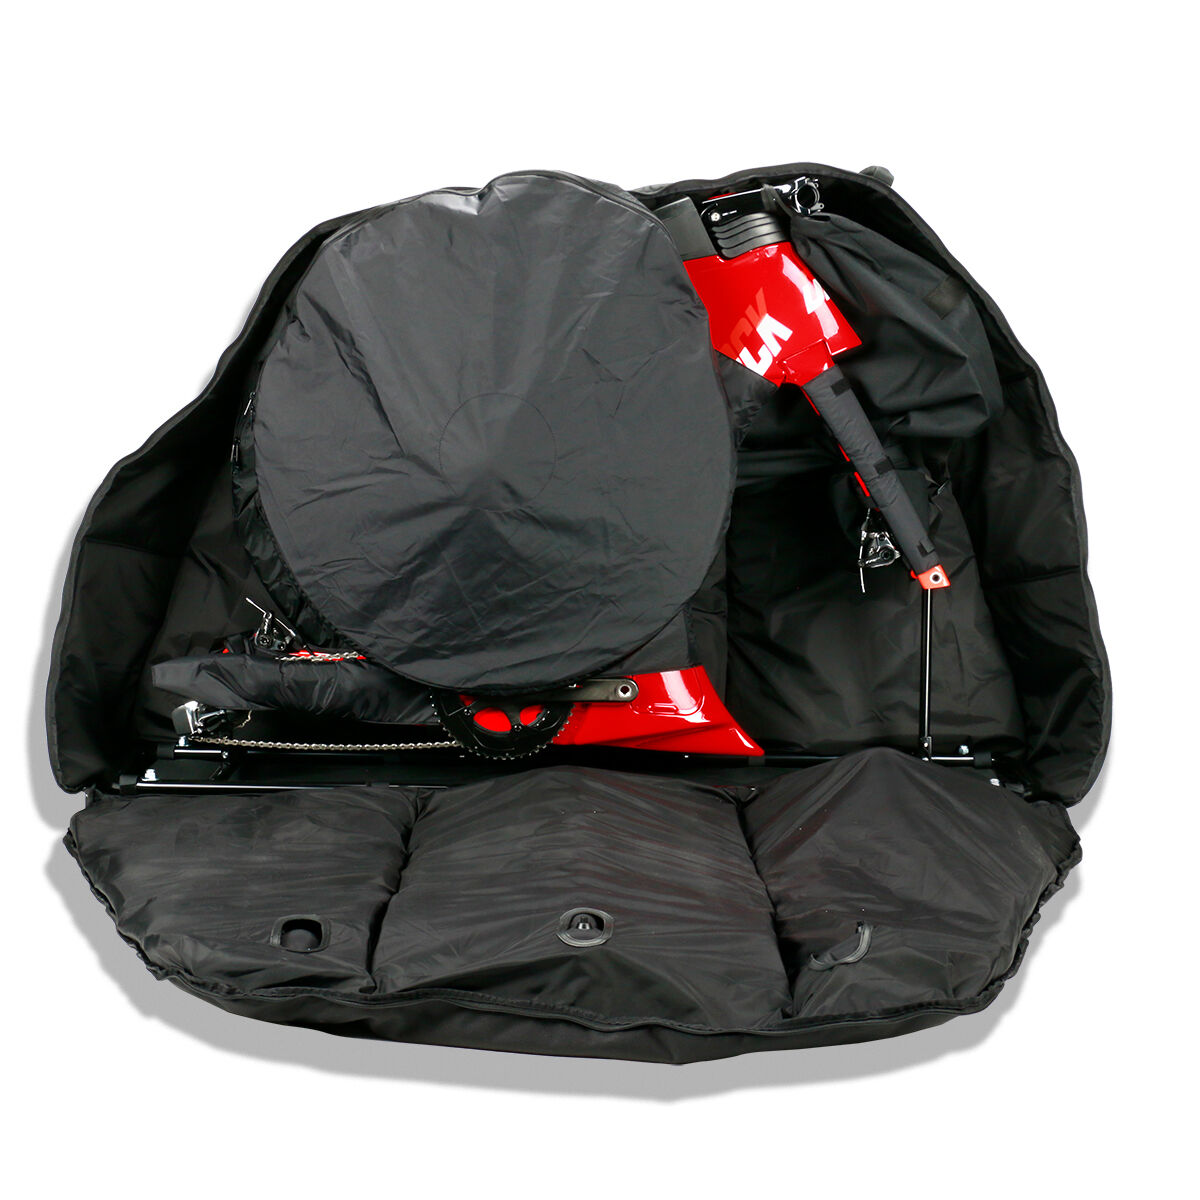 Custom Travel Bike Bag